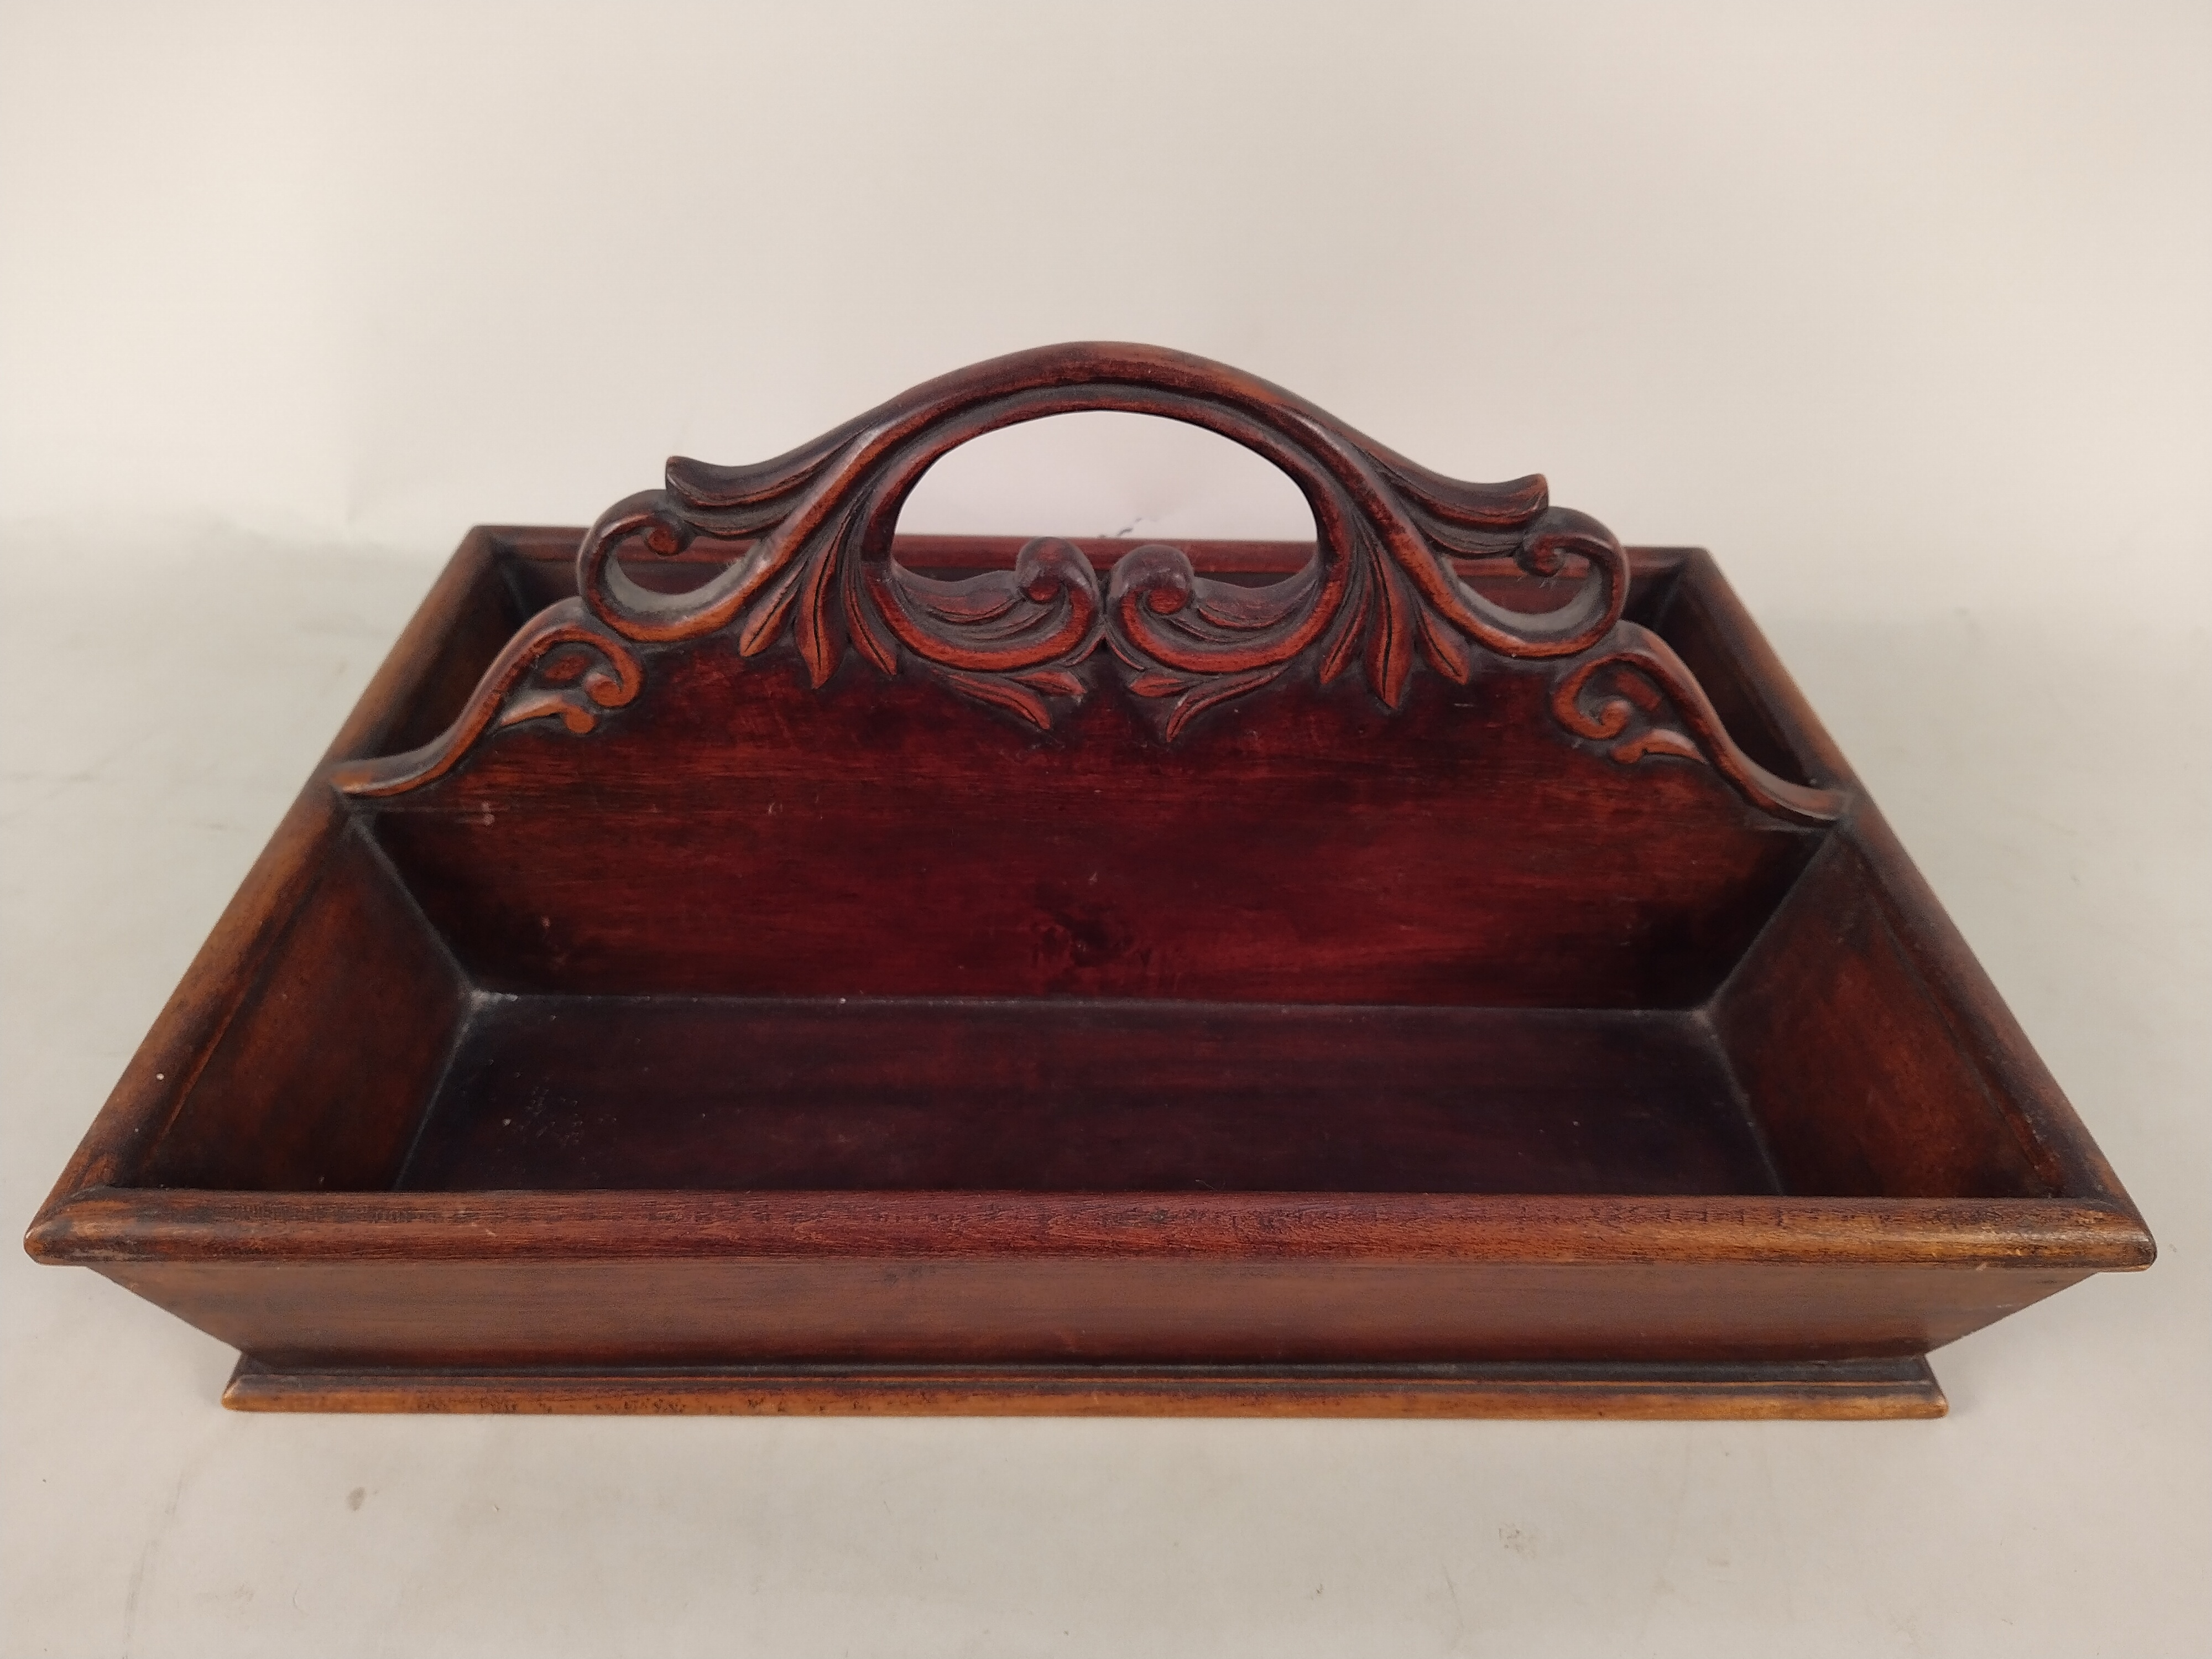 A hardwood cutlery box with carved handle - Image 2 of 3